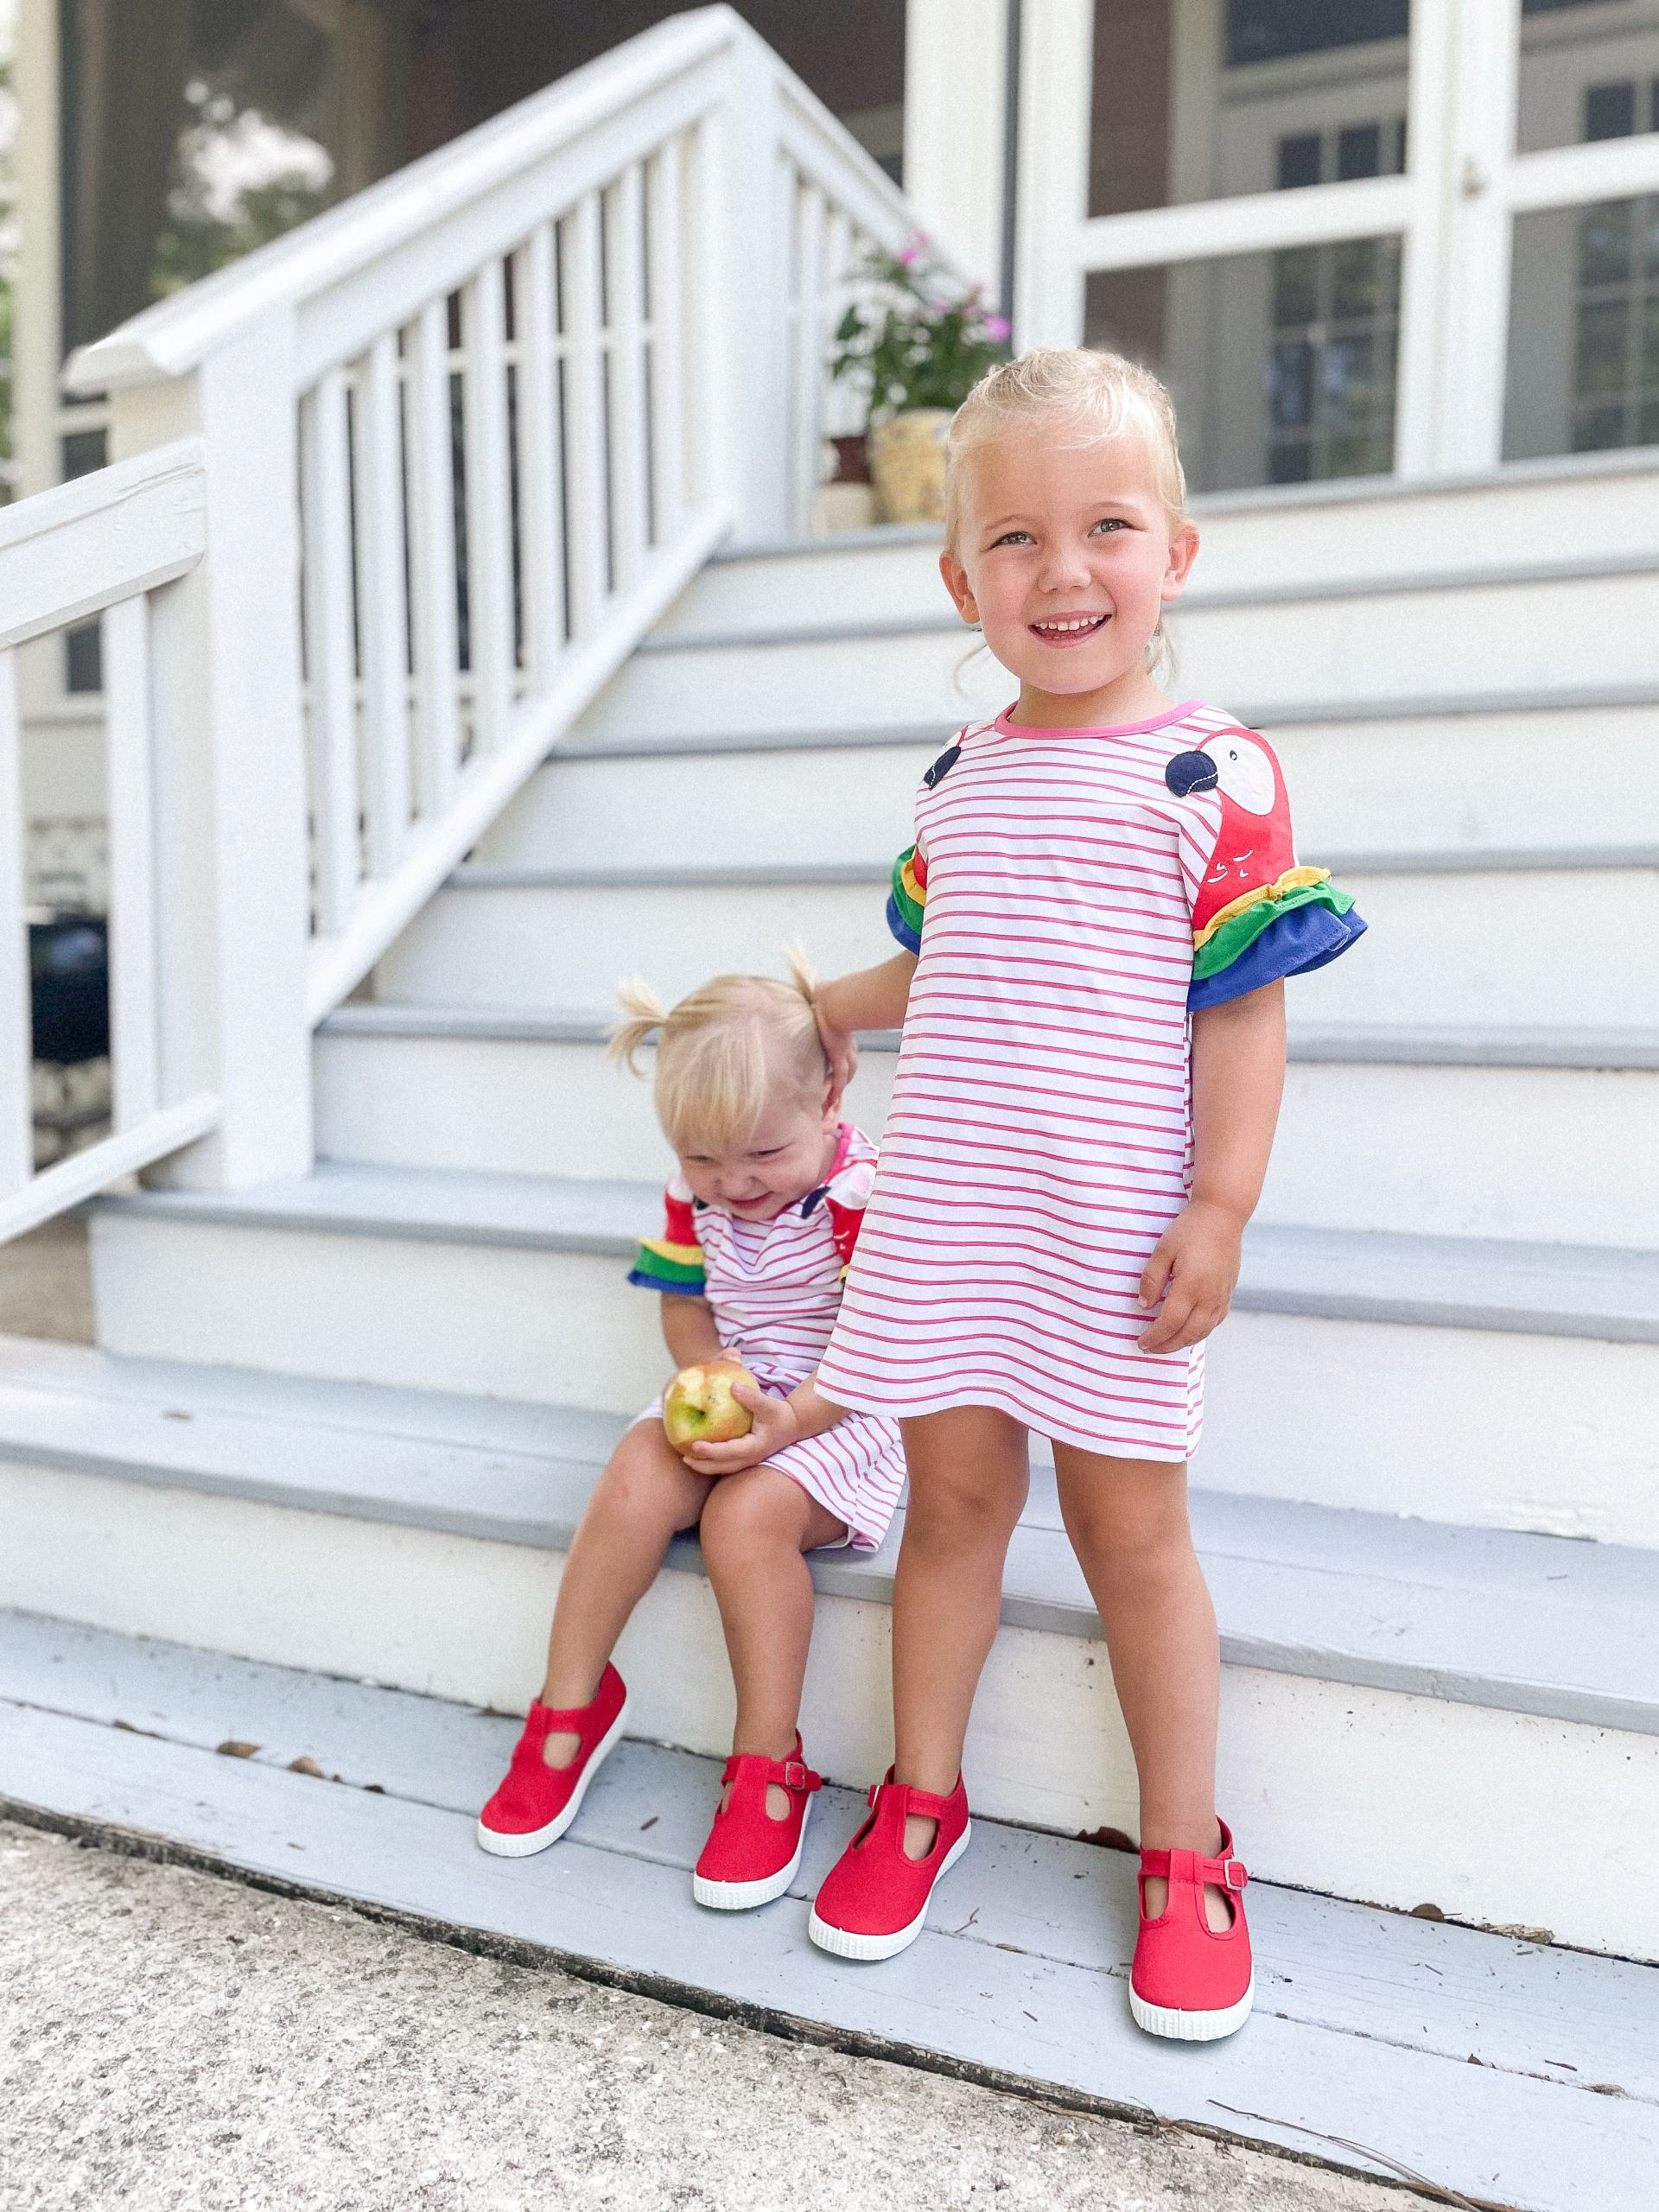 Jenzy shoes - Cienta t-strap sneakers - red Cientas - amazon toddler dress